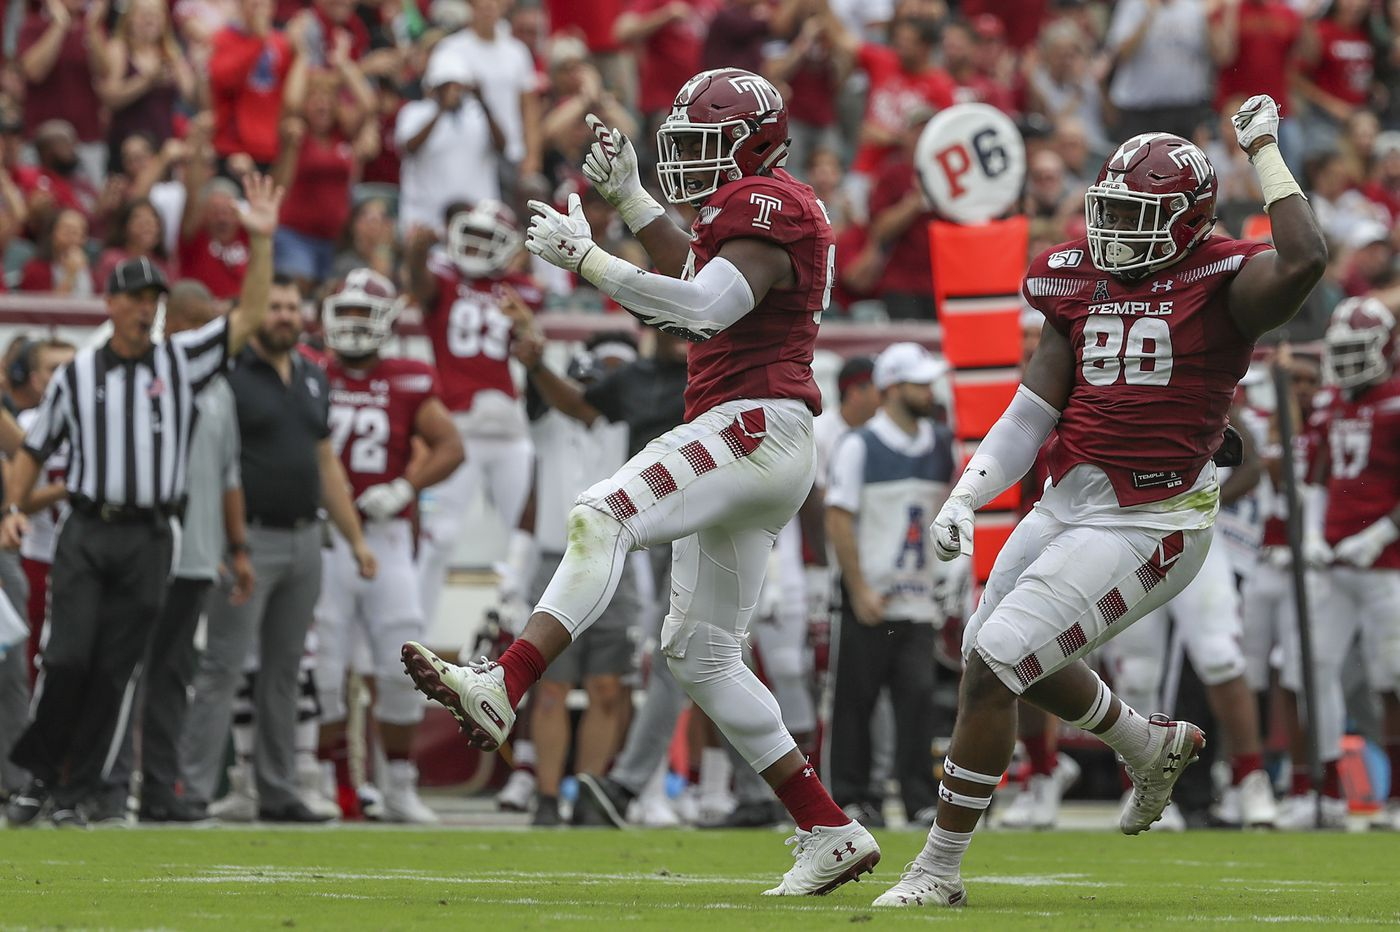 Temple's Quincy Roche says that transferring is the best decision for him and his family